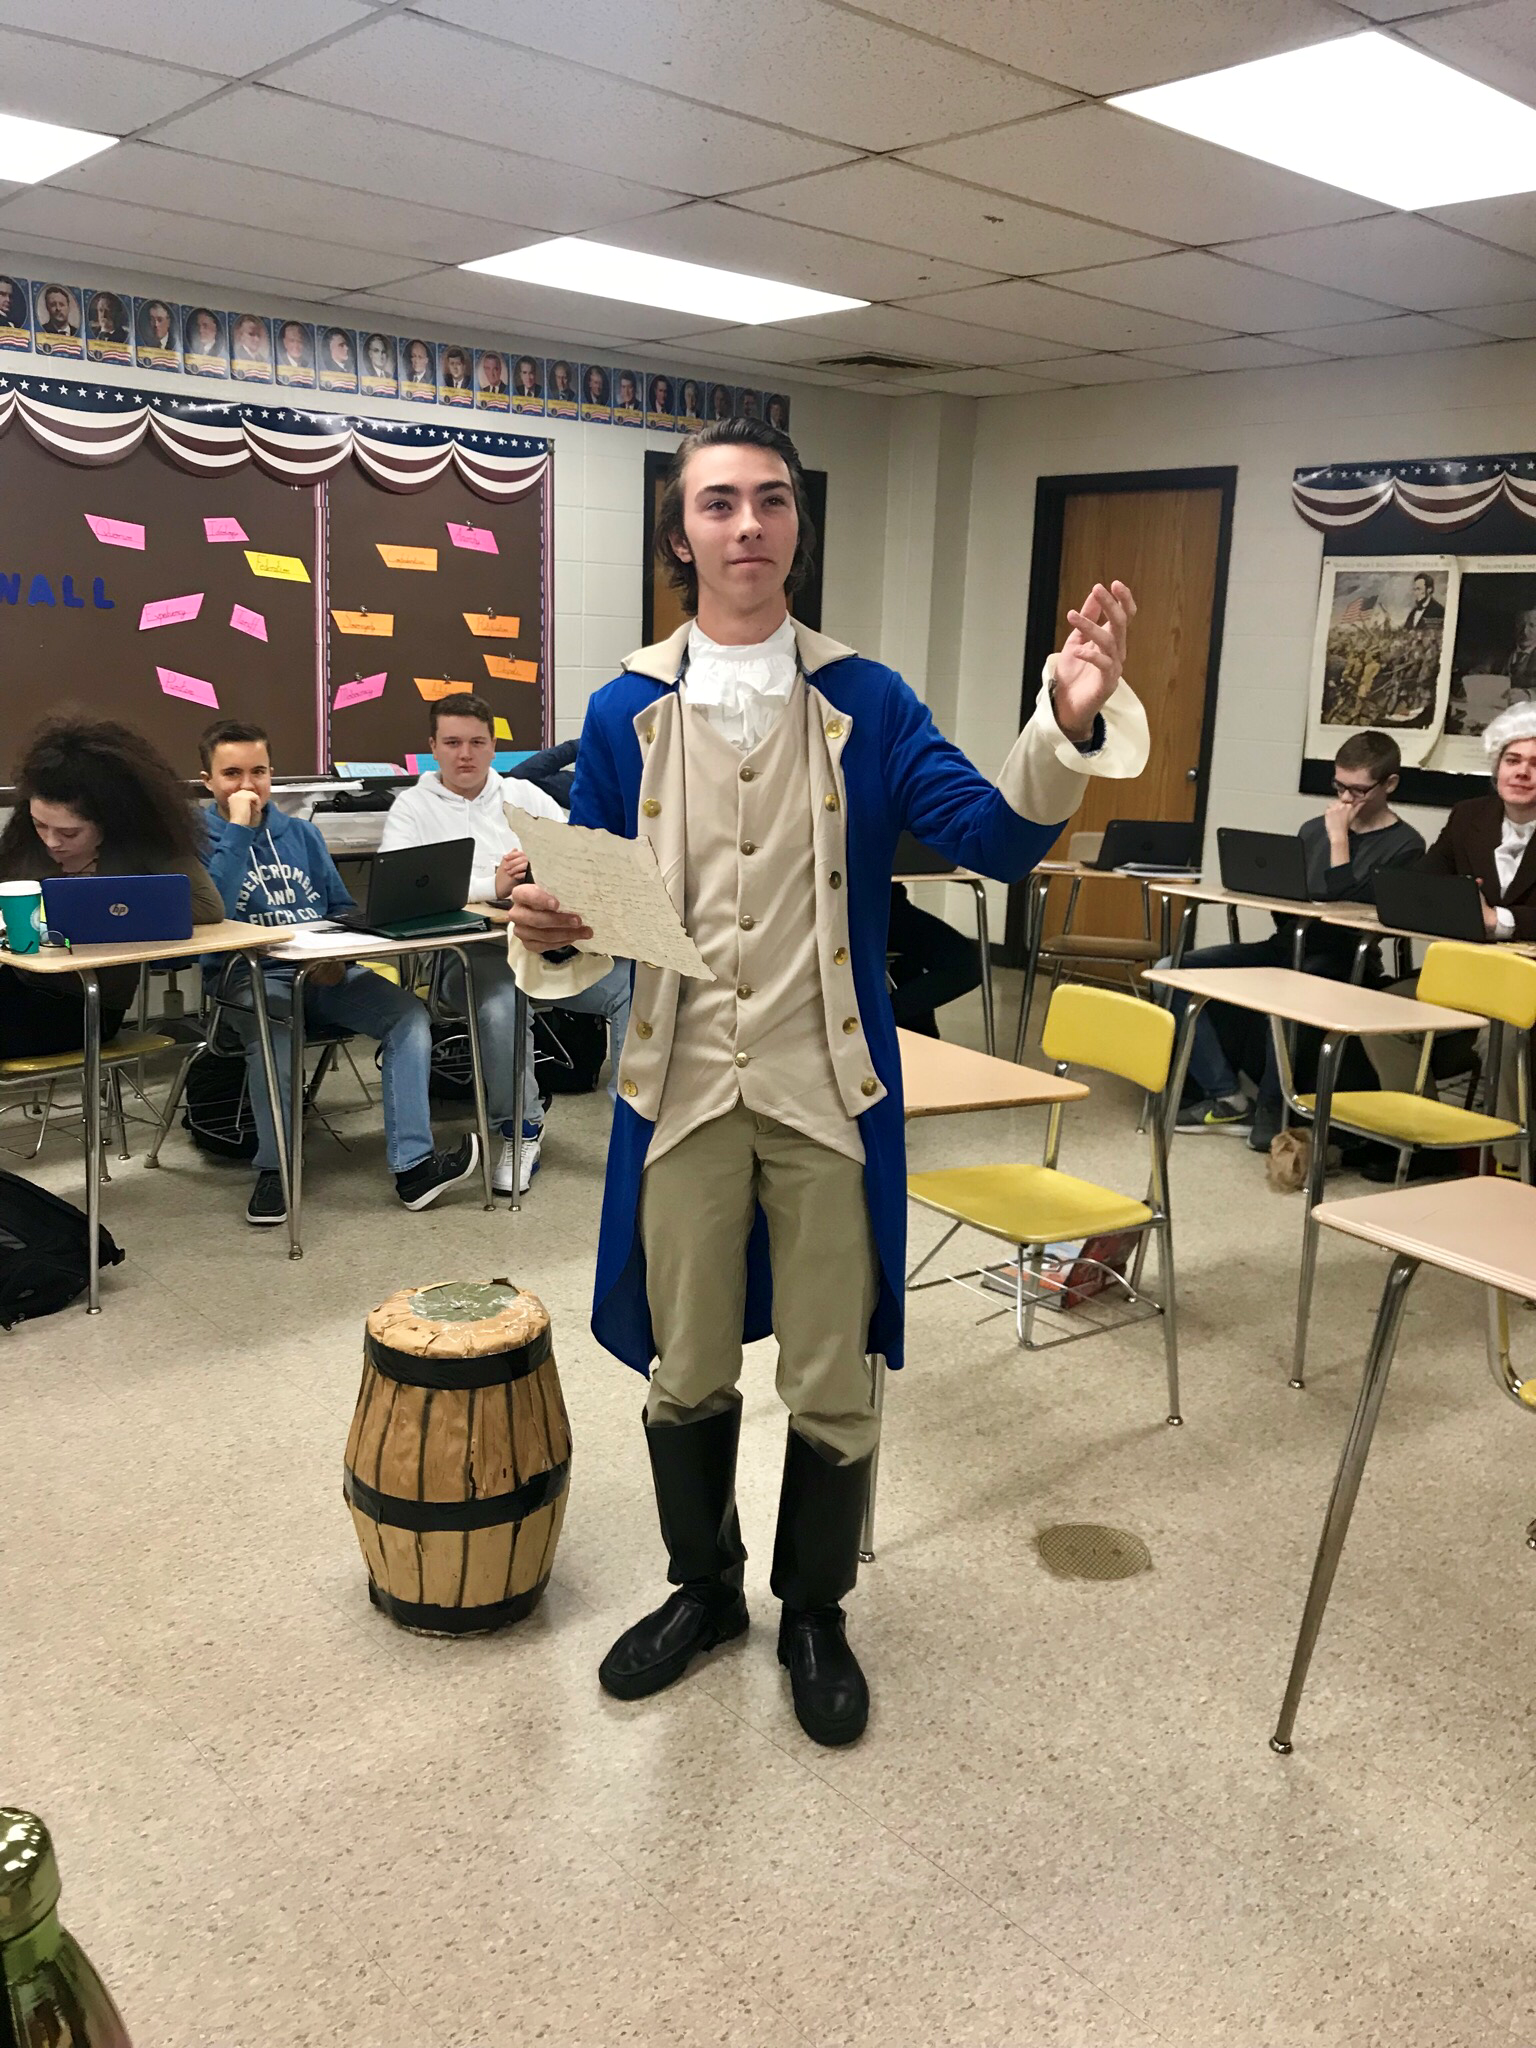 Student portraying Alexander Hamilton and reading a speech